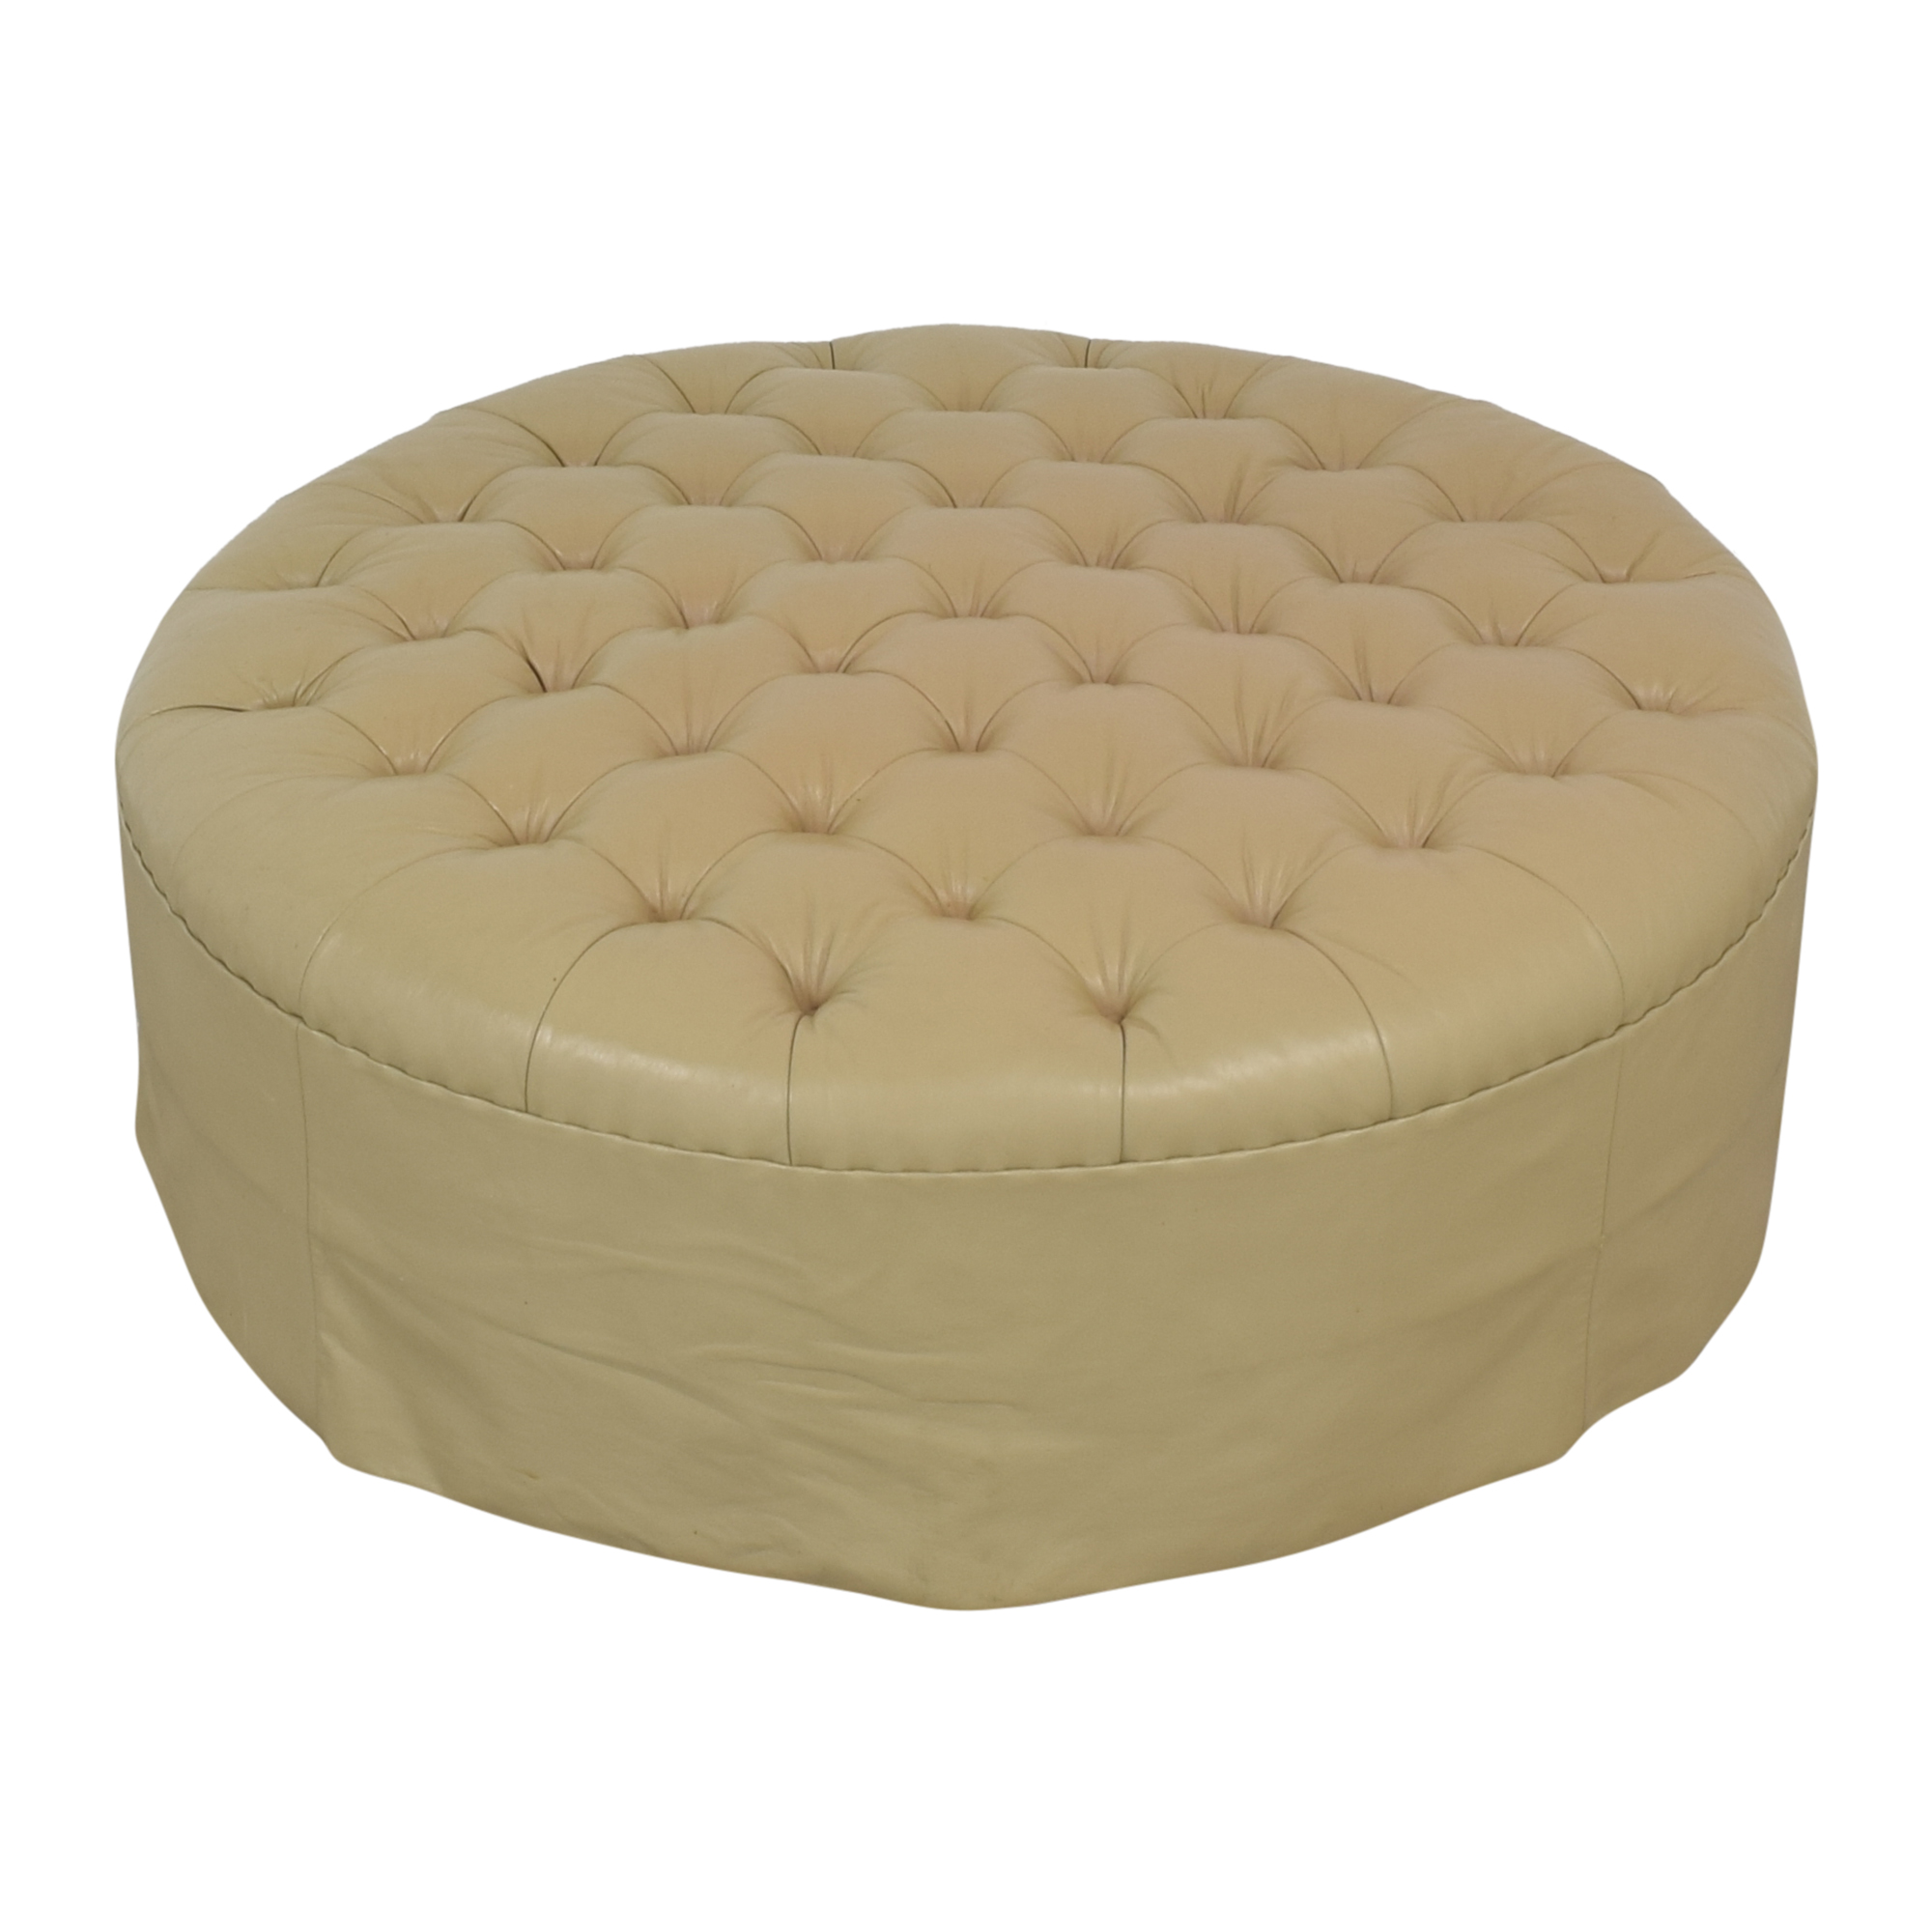 Vicente Wolf Vicente Wolf Round Tufted Ottoman discount